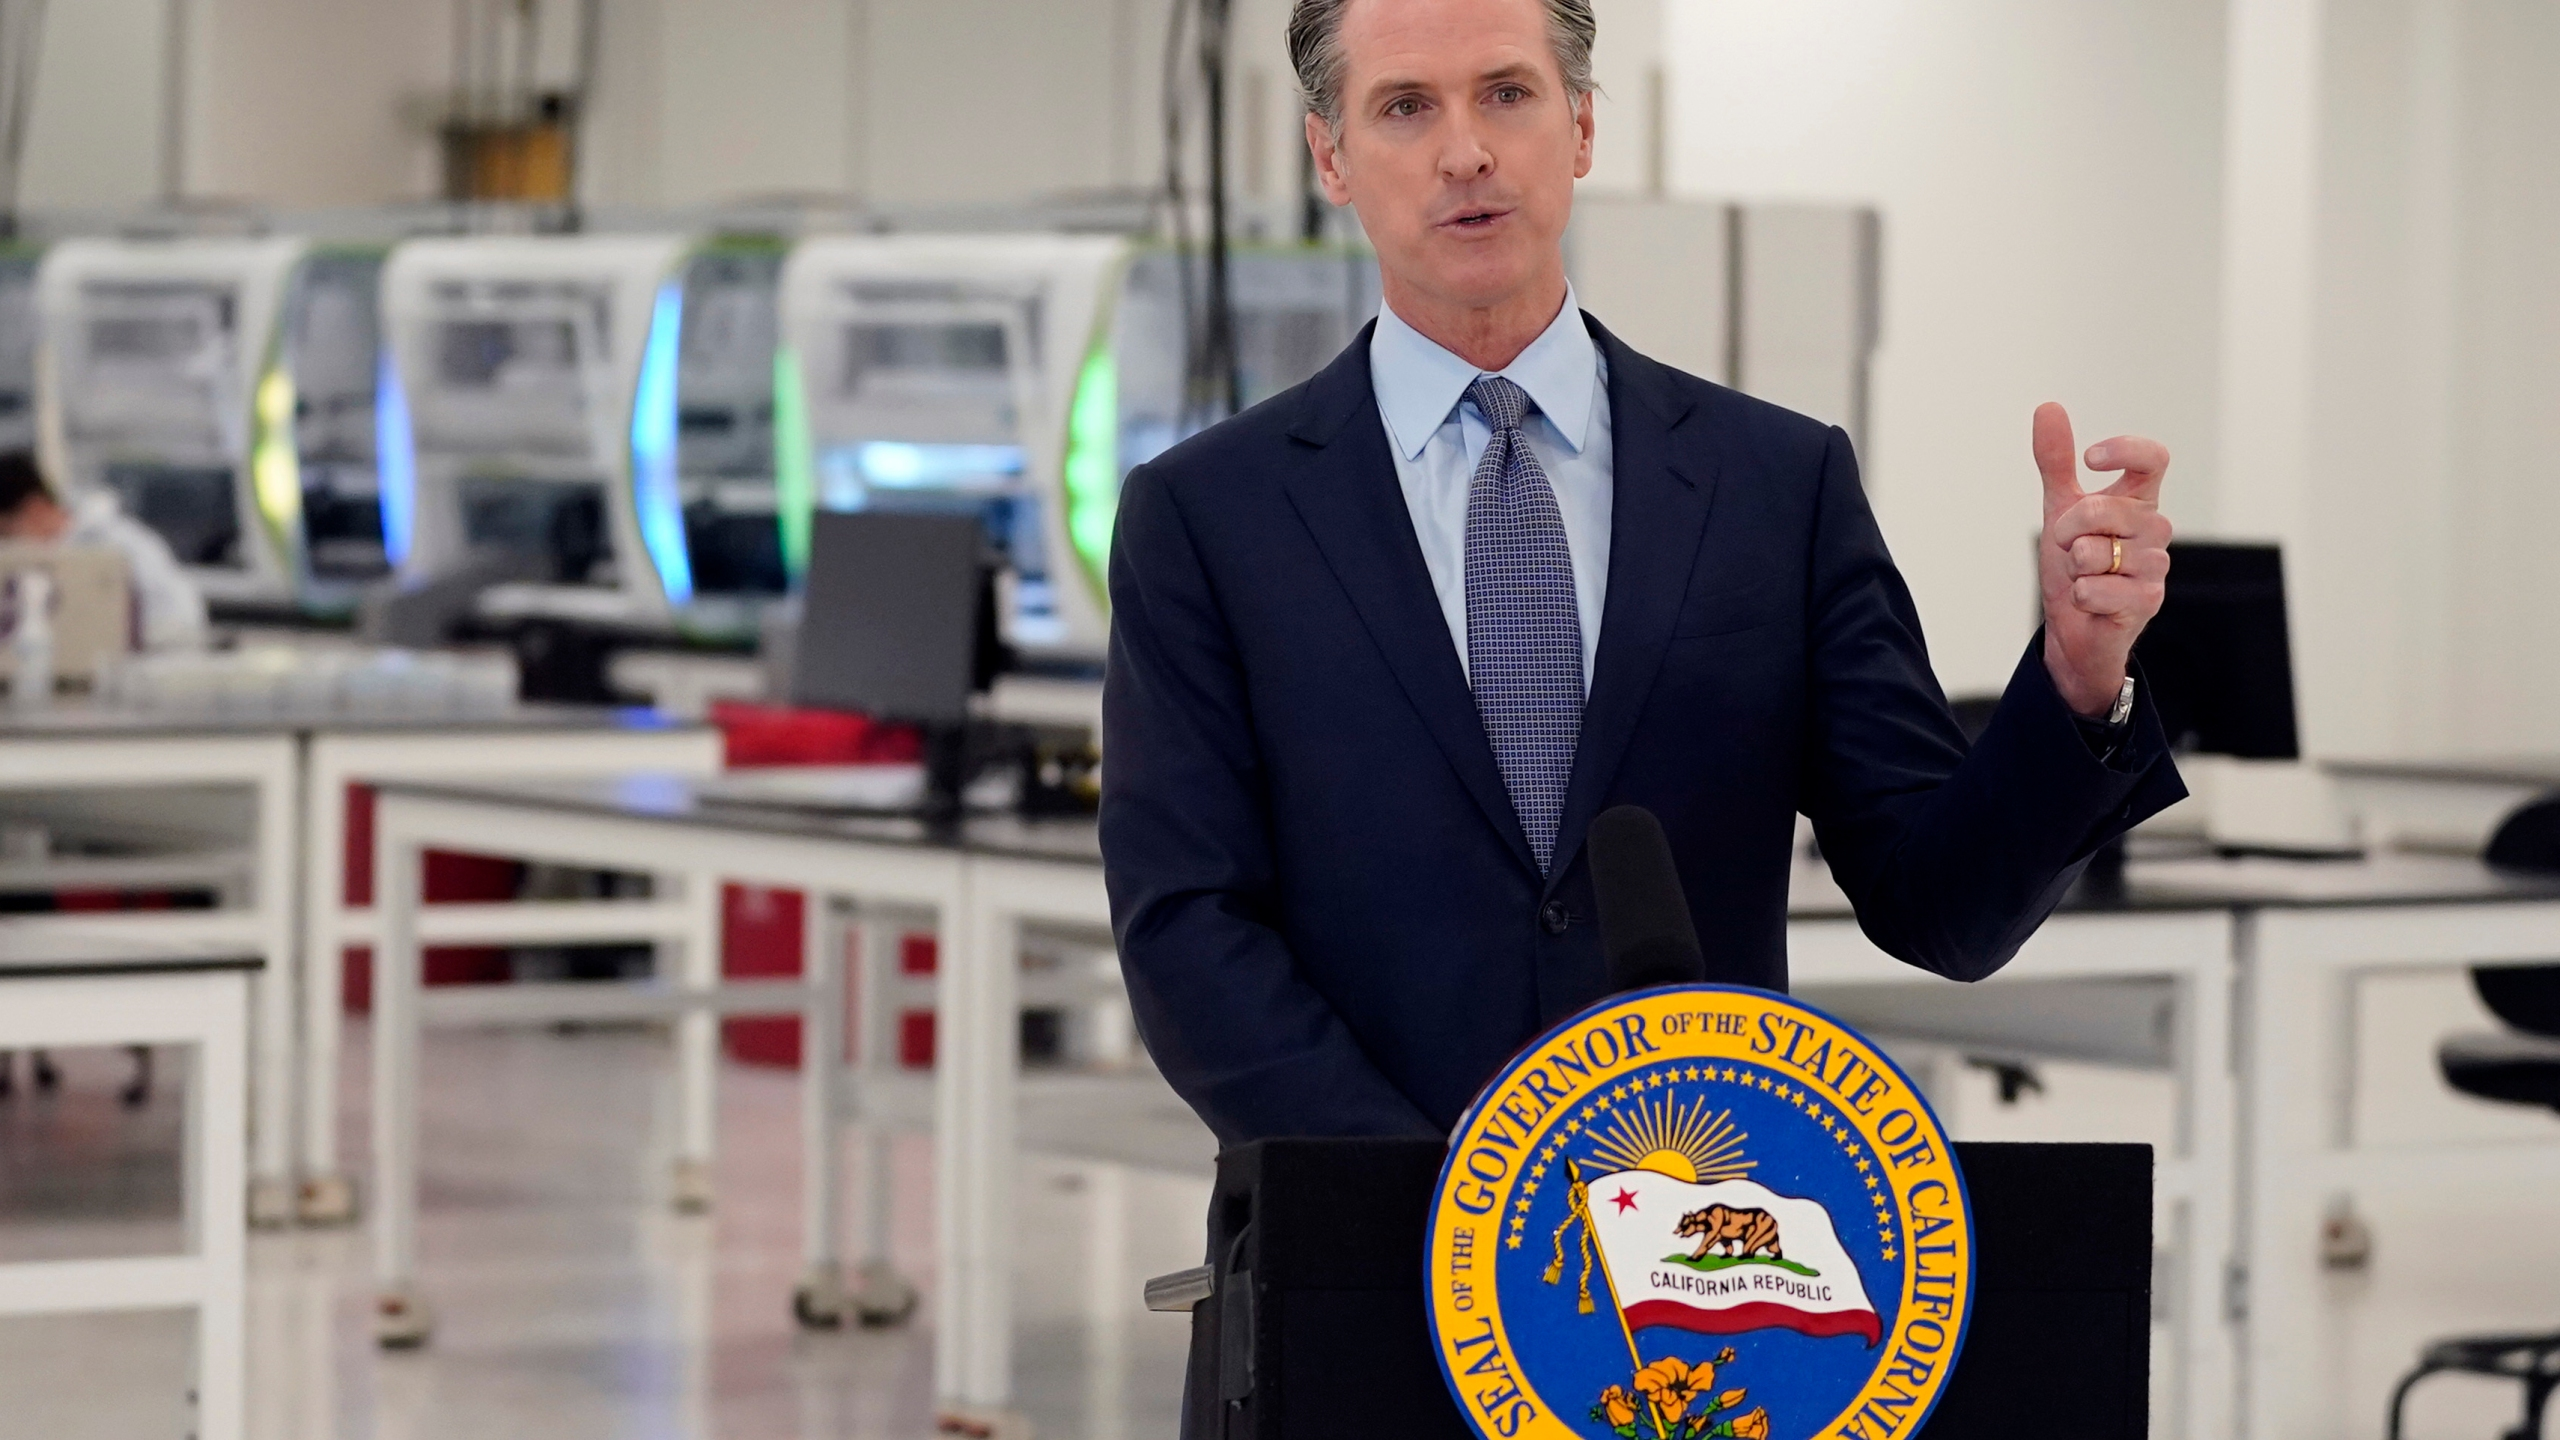 """In this Oct. 30, 2020, file photo, California Gov. Gavin Newsom speaks at a COVID-19 testing facility in Valencia, Calif. Newsom on Monday, Nov. 16, 2020, apologized for what he called """"a bad mistake"""" in attending a birthday party that broke the very rules that he has been preaching to slow the spread of the coronavirus. (AP Photo/Marcio Jose Sanchez, Pool, File)"""